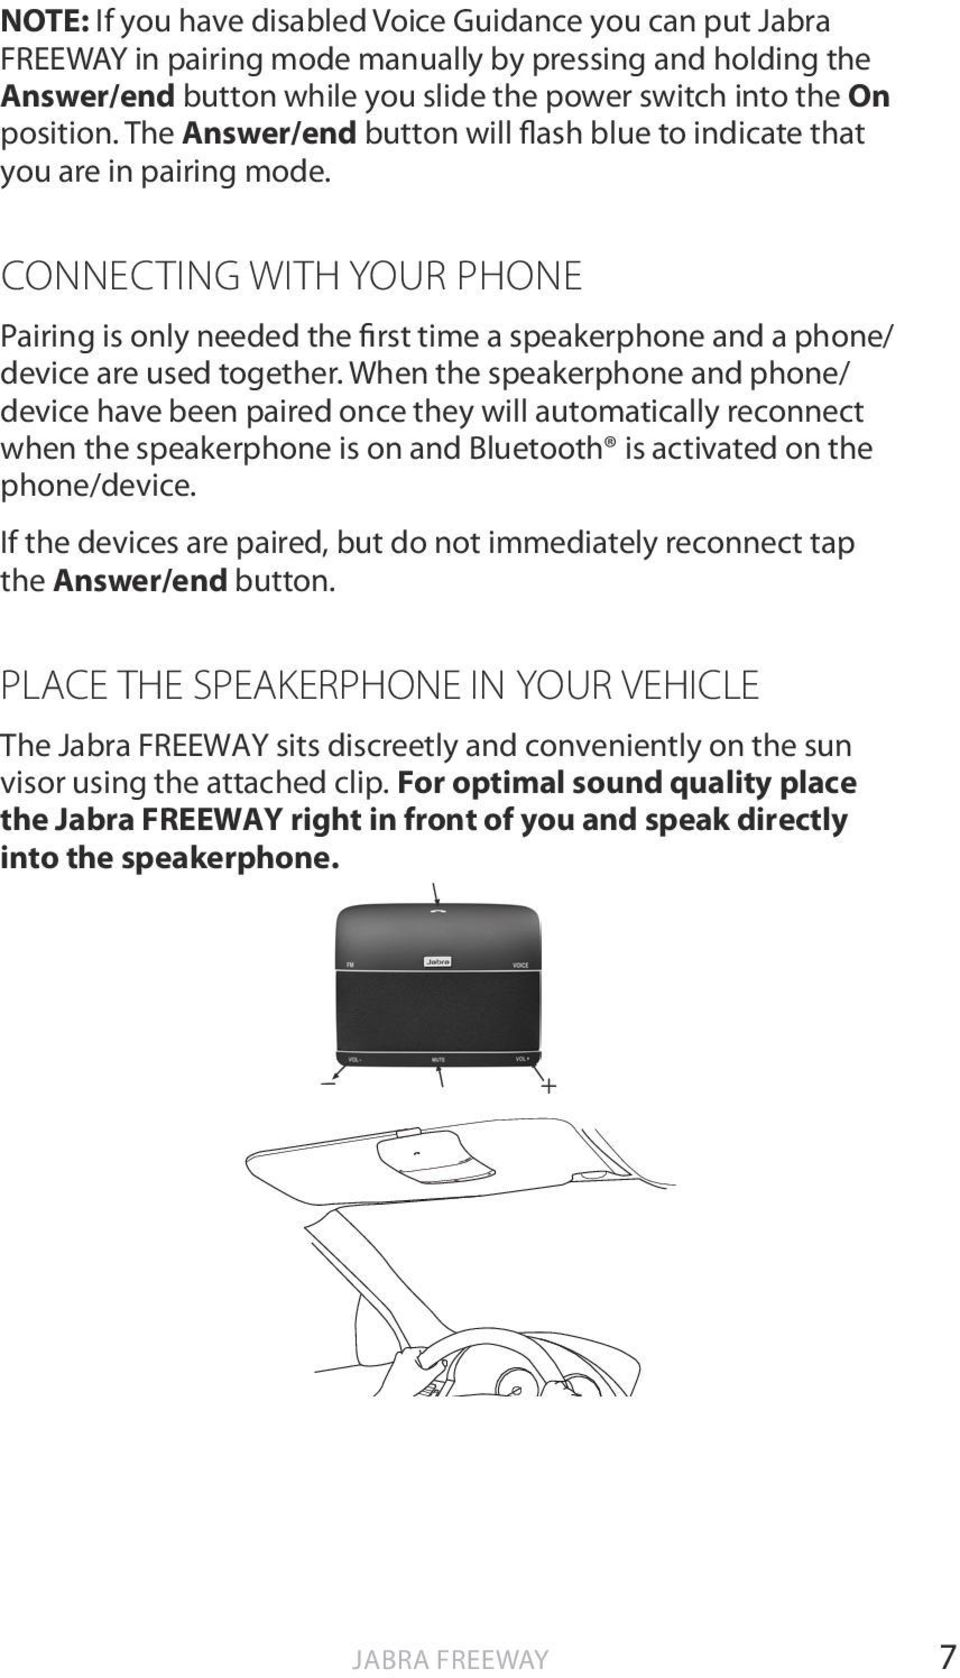 Jabra freeway. User manual. Pdf.